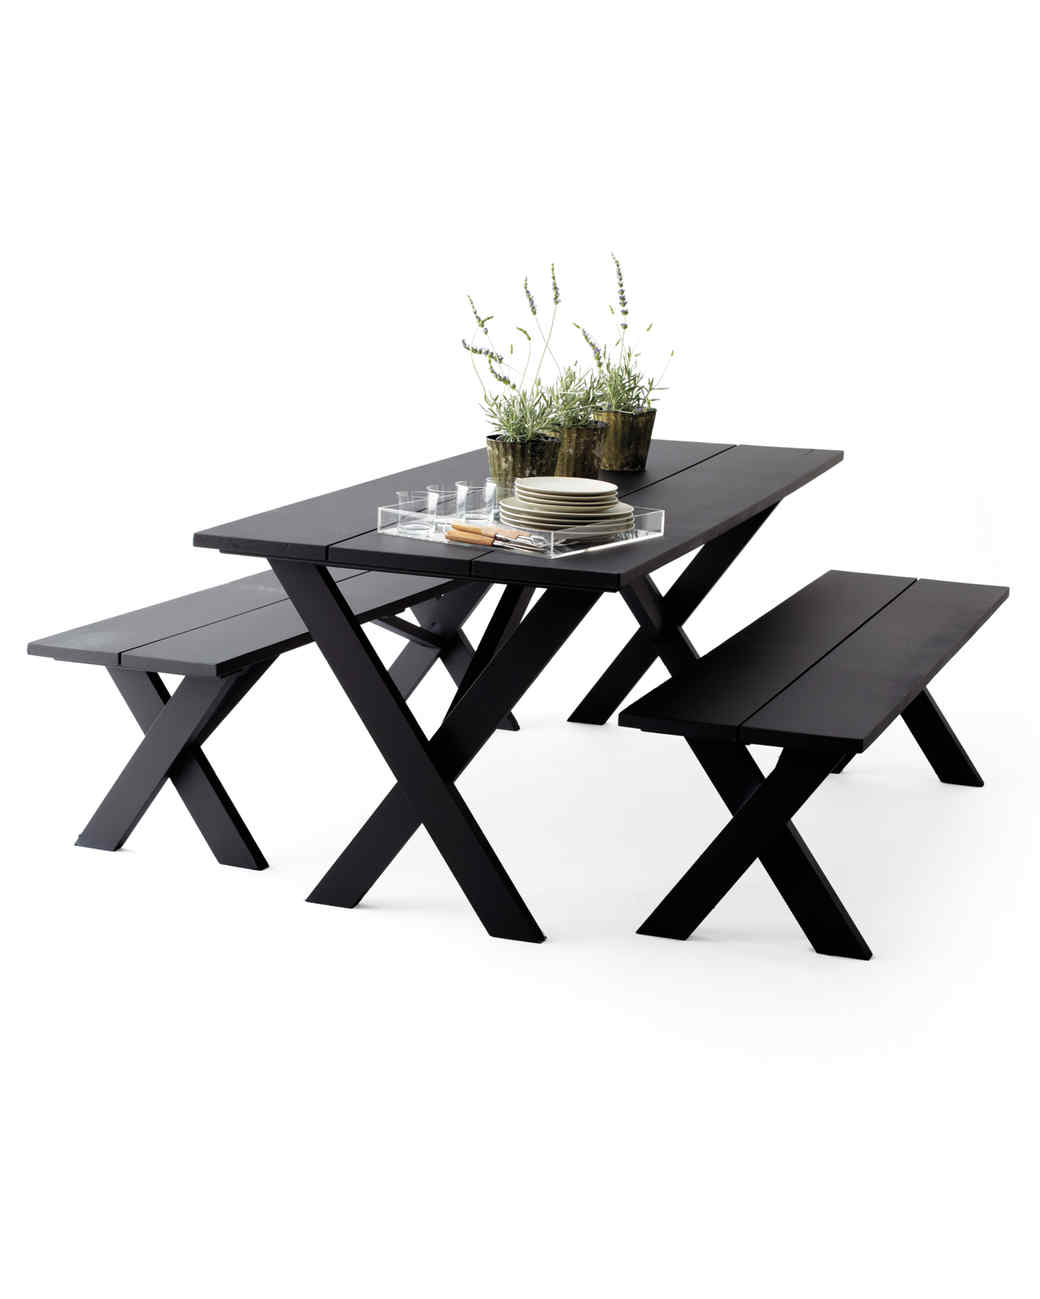 black-table-016-md108770.jpg